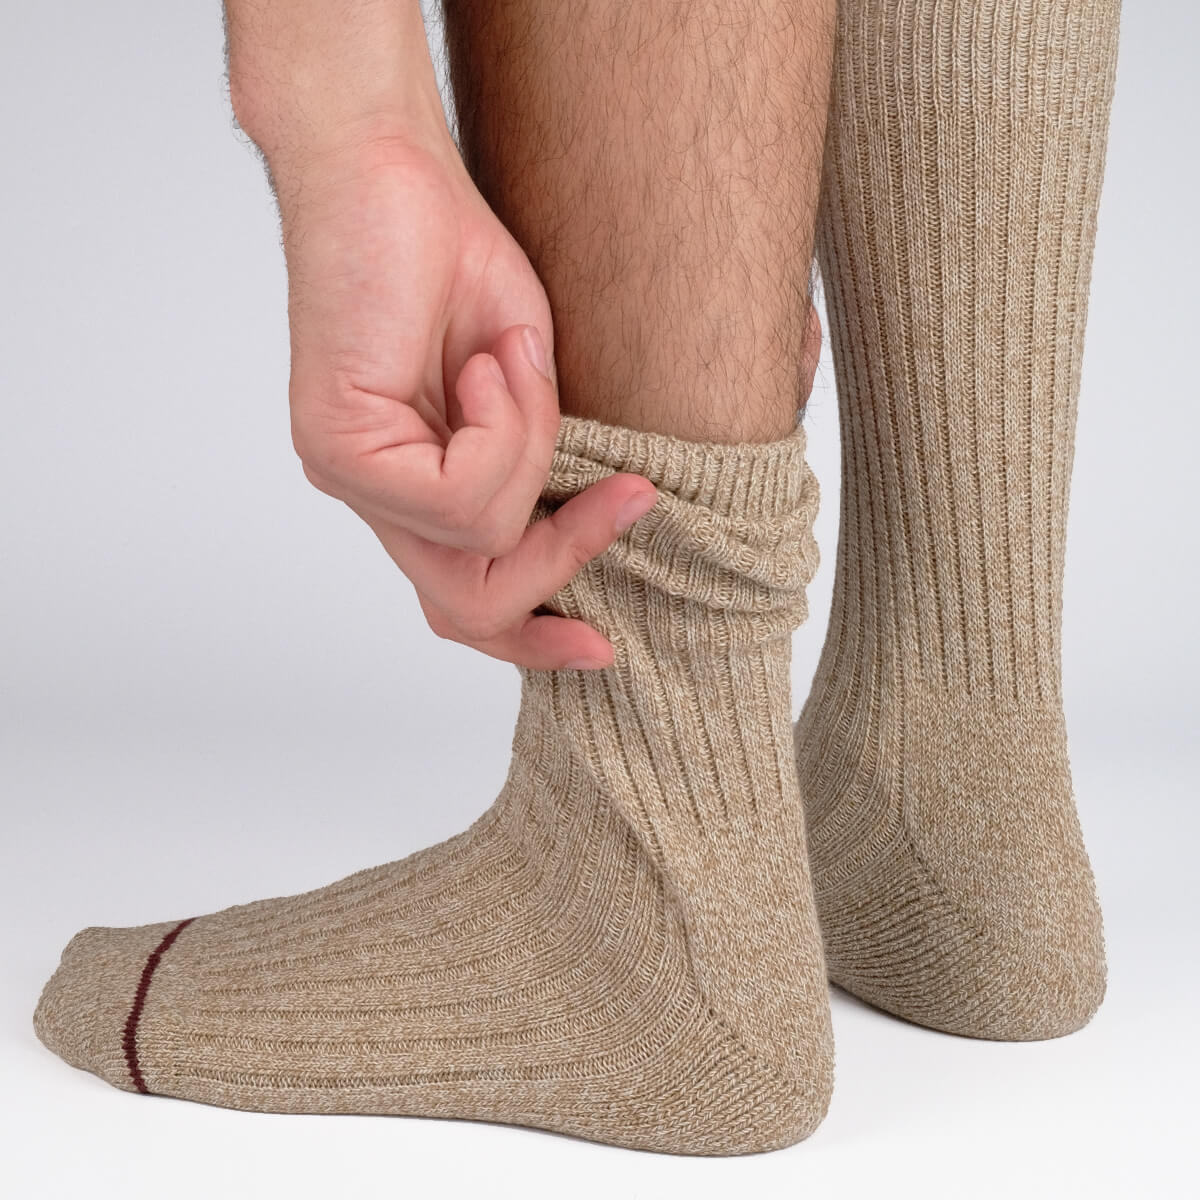 Get The Boot Socks - Brown - Image 3